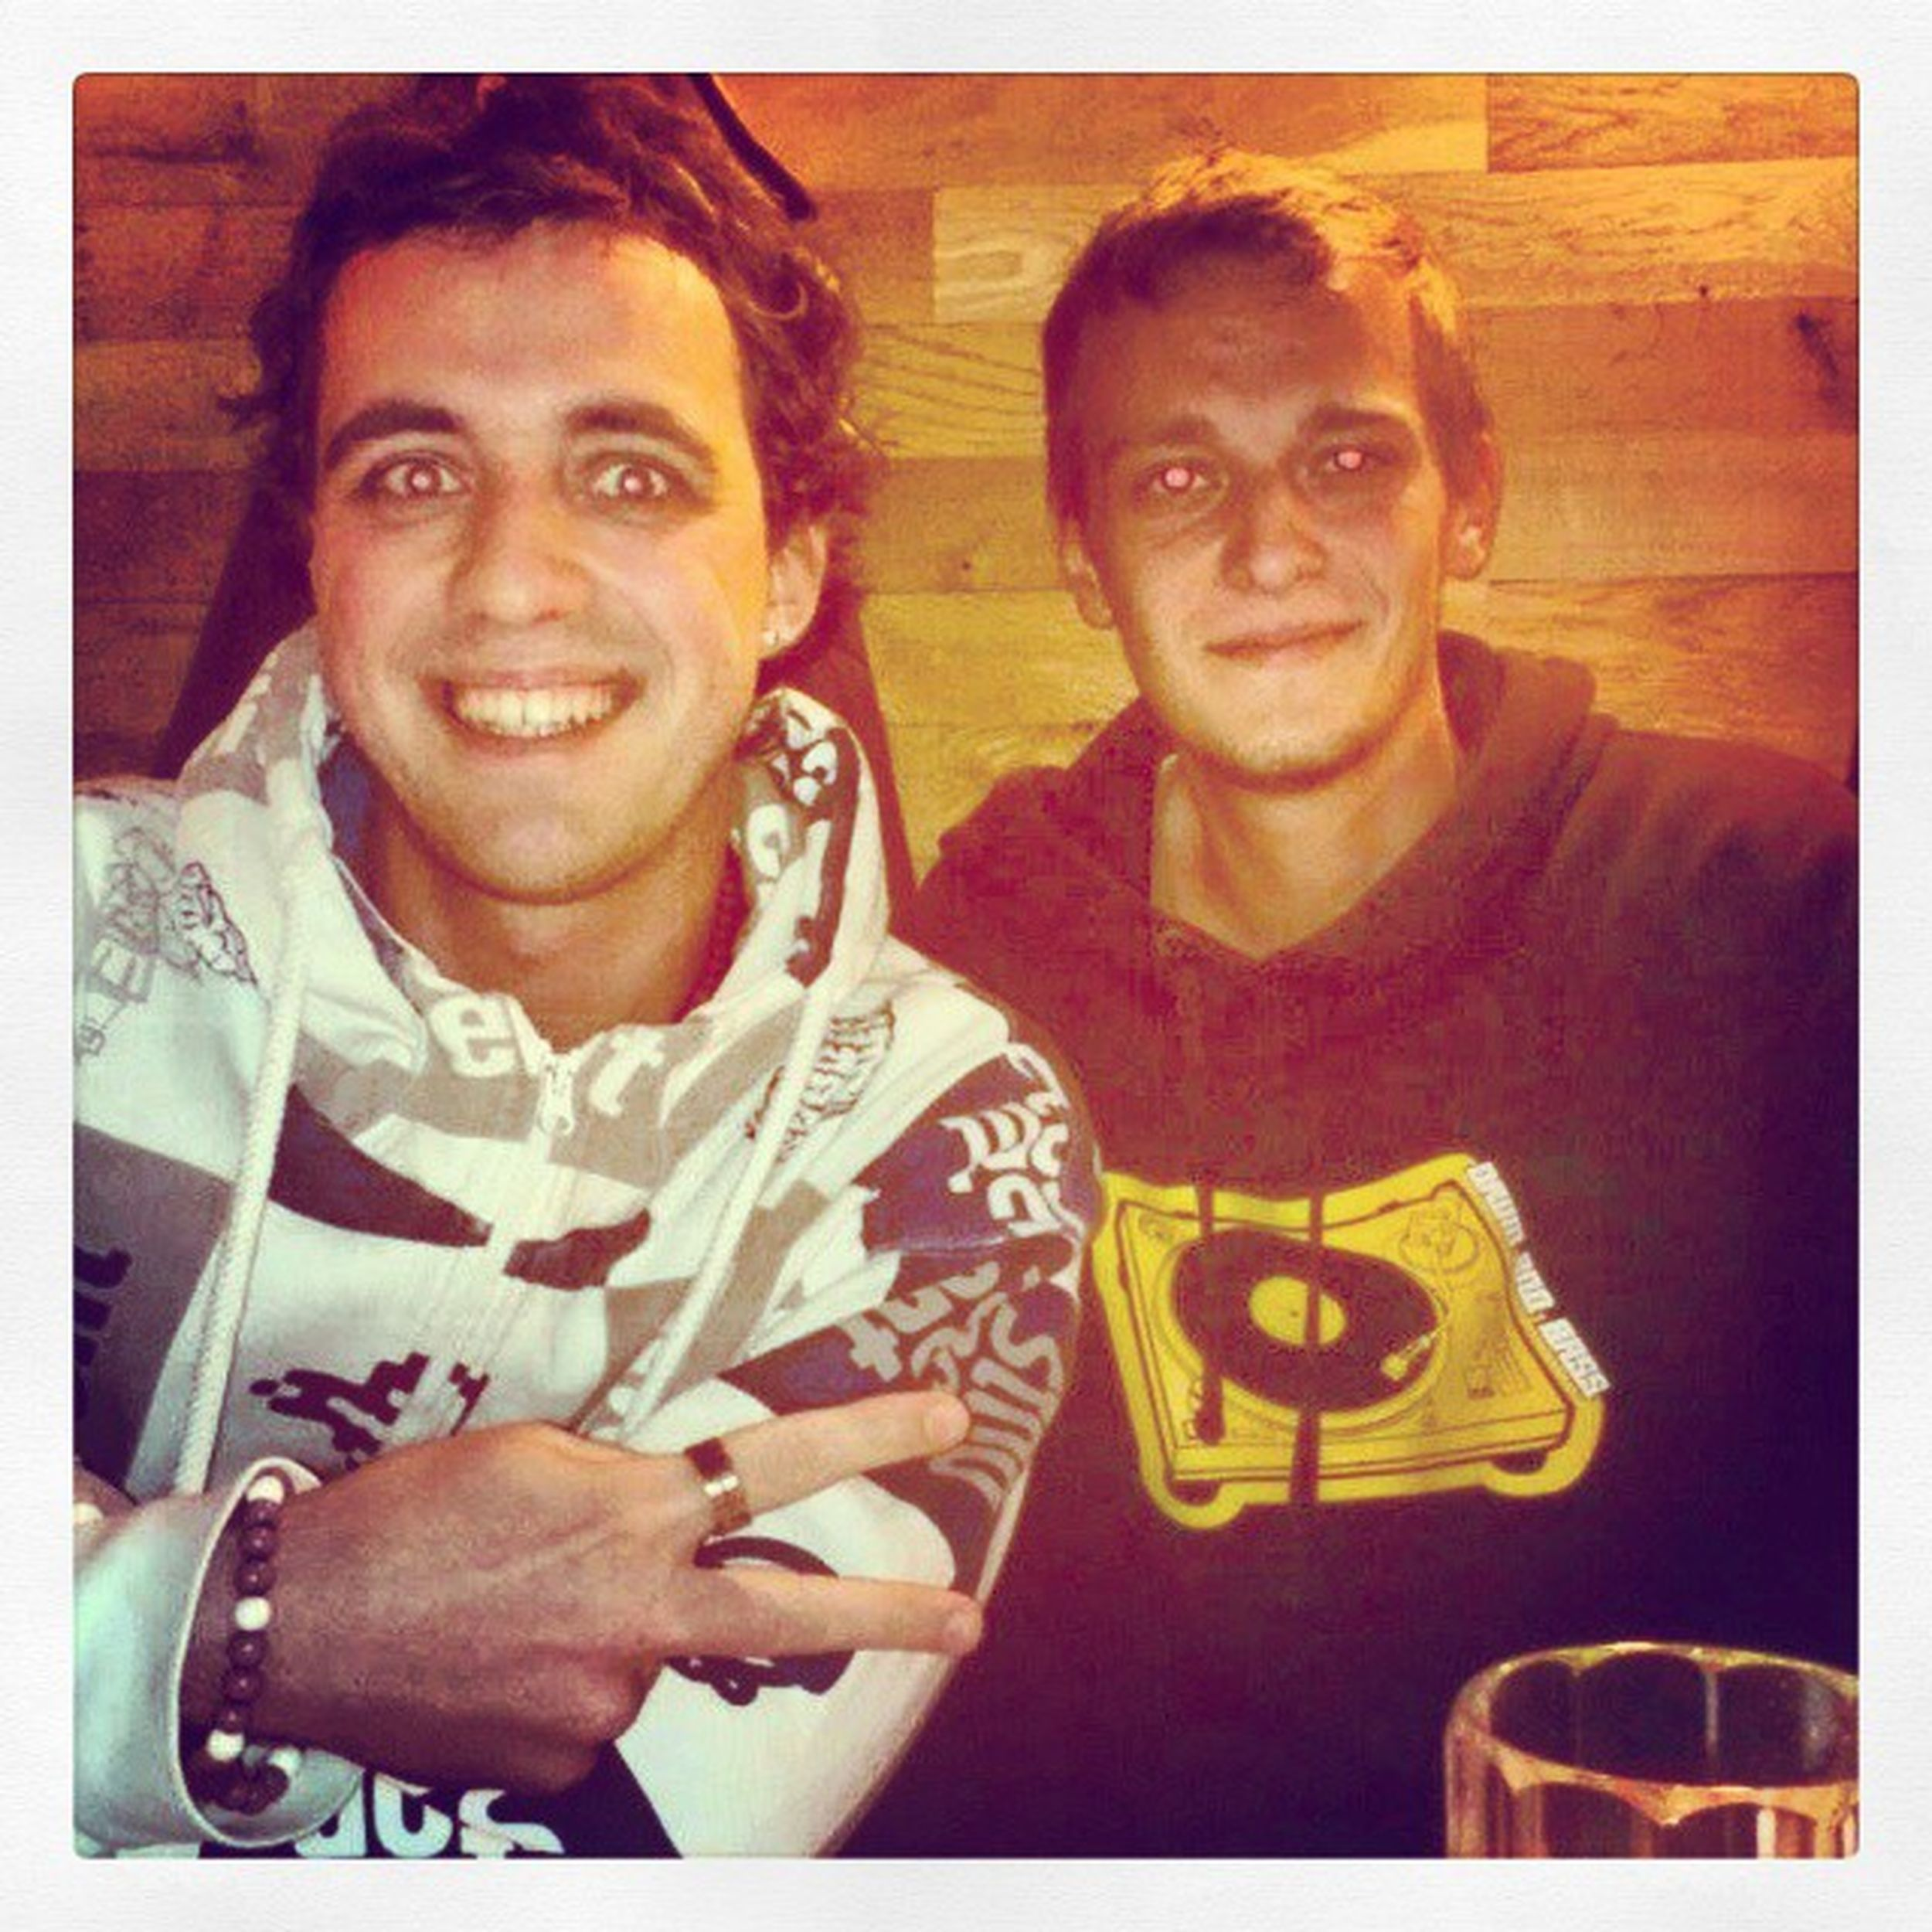 Me and my friend on small Beer meeting :-) Othersideclick BeatLife Boss Bosses Rap HipHip PictureOfTheDay PicOfTheDay Friends